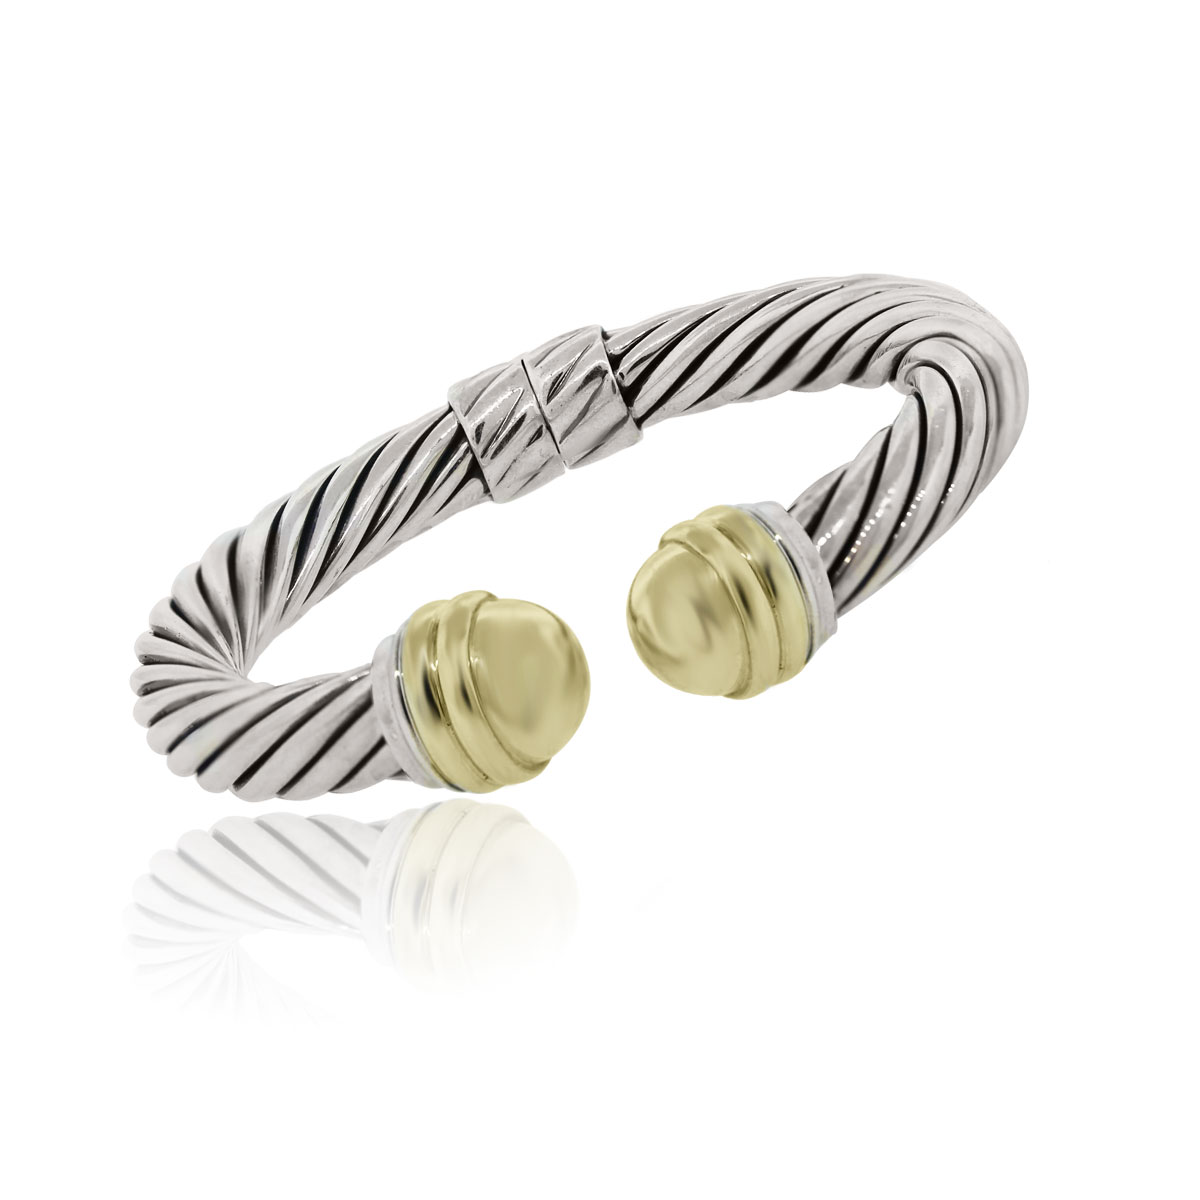 You are viewing this David Yurman 14k Two Tone 10mm Cable Bracelet!